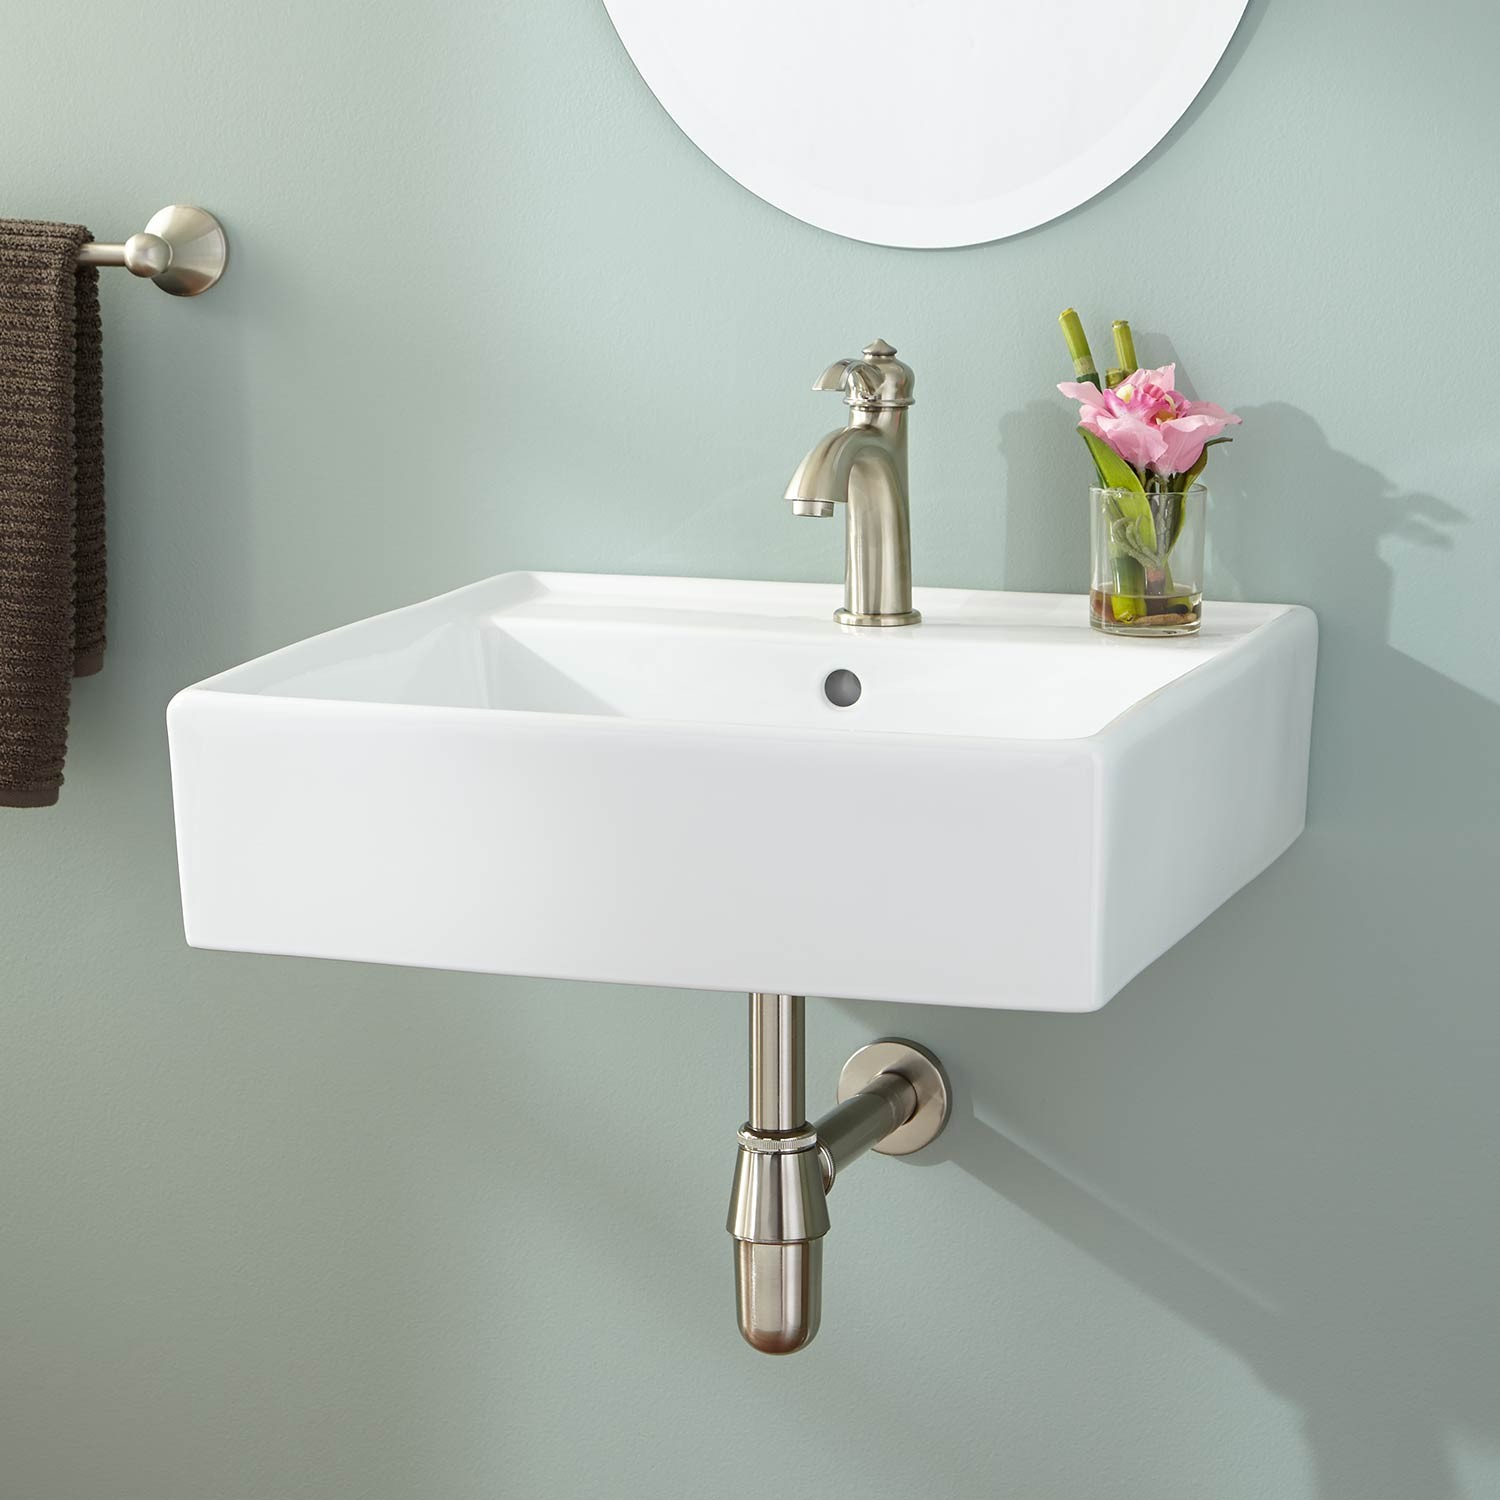 Elite Reasons To Buy Wall Mounted Bathroom Sinks Ward Log Homes Standard in Elegant Small Bathroom Sinks Wall Mount